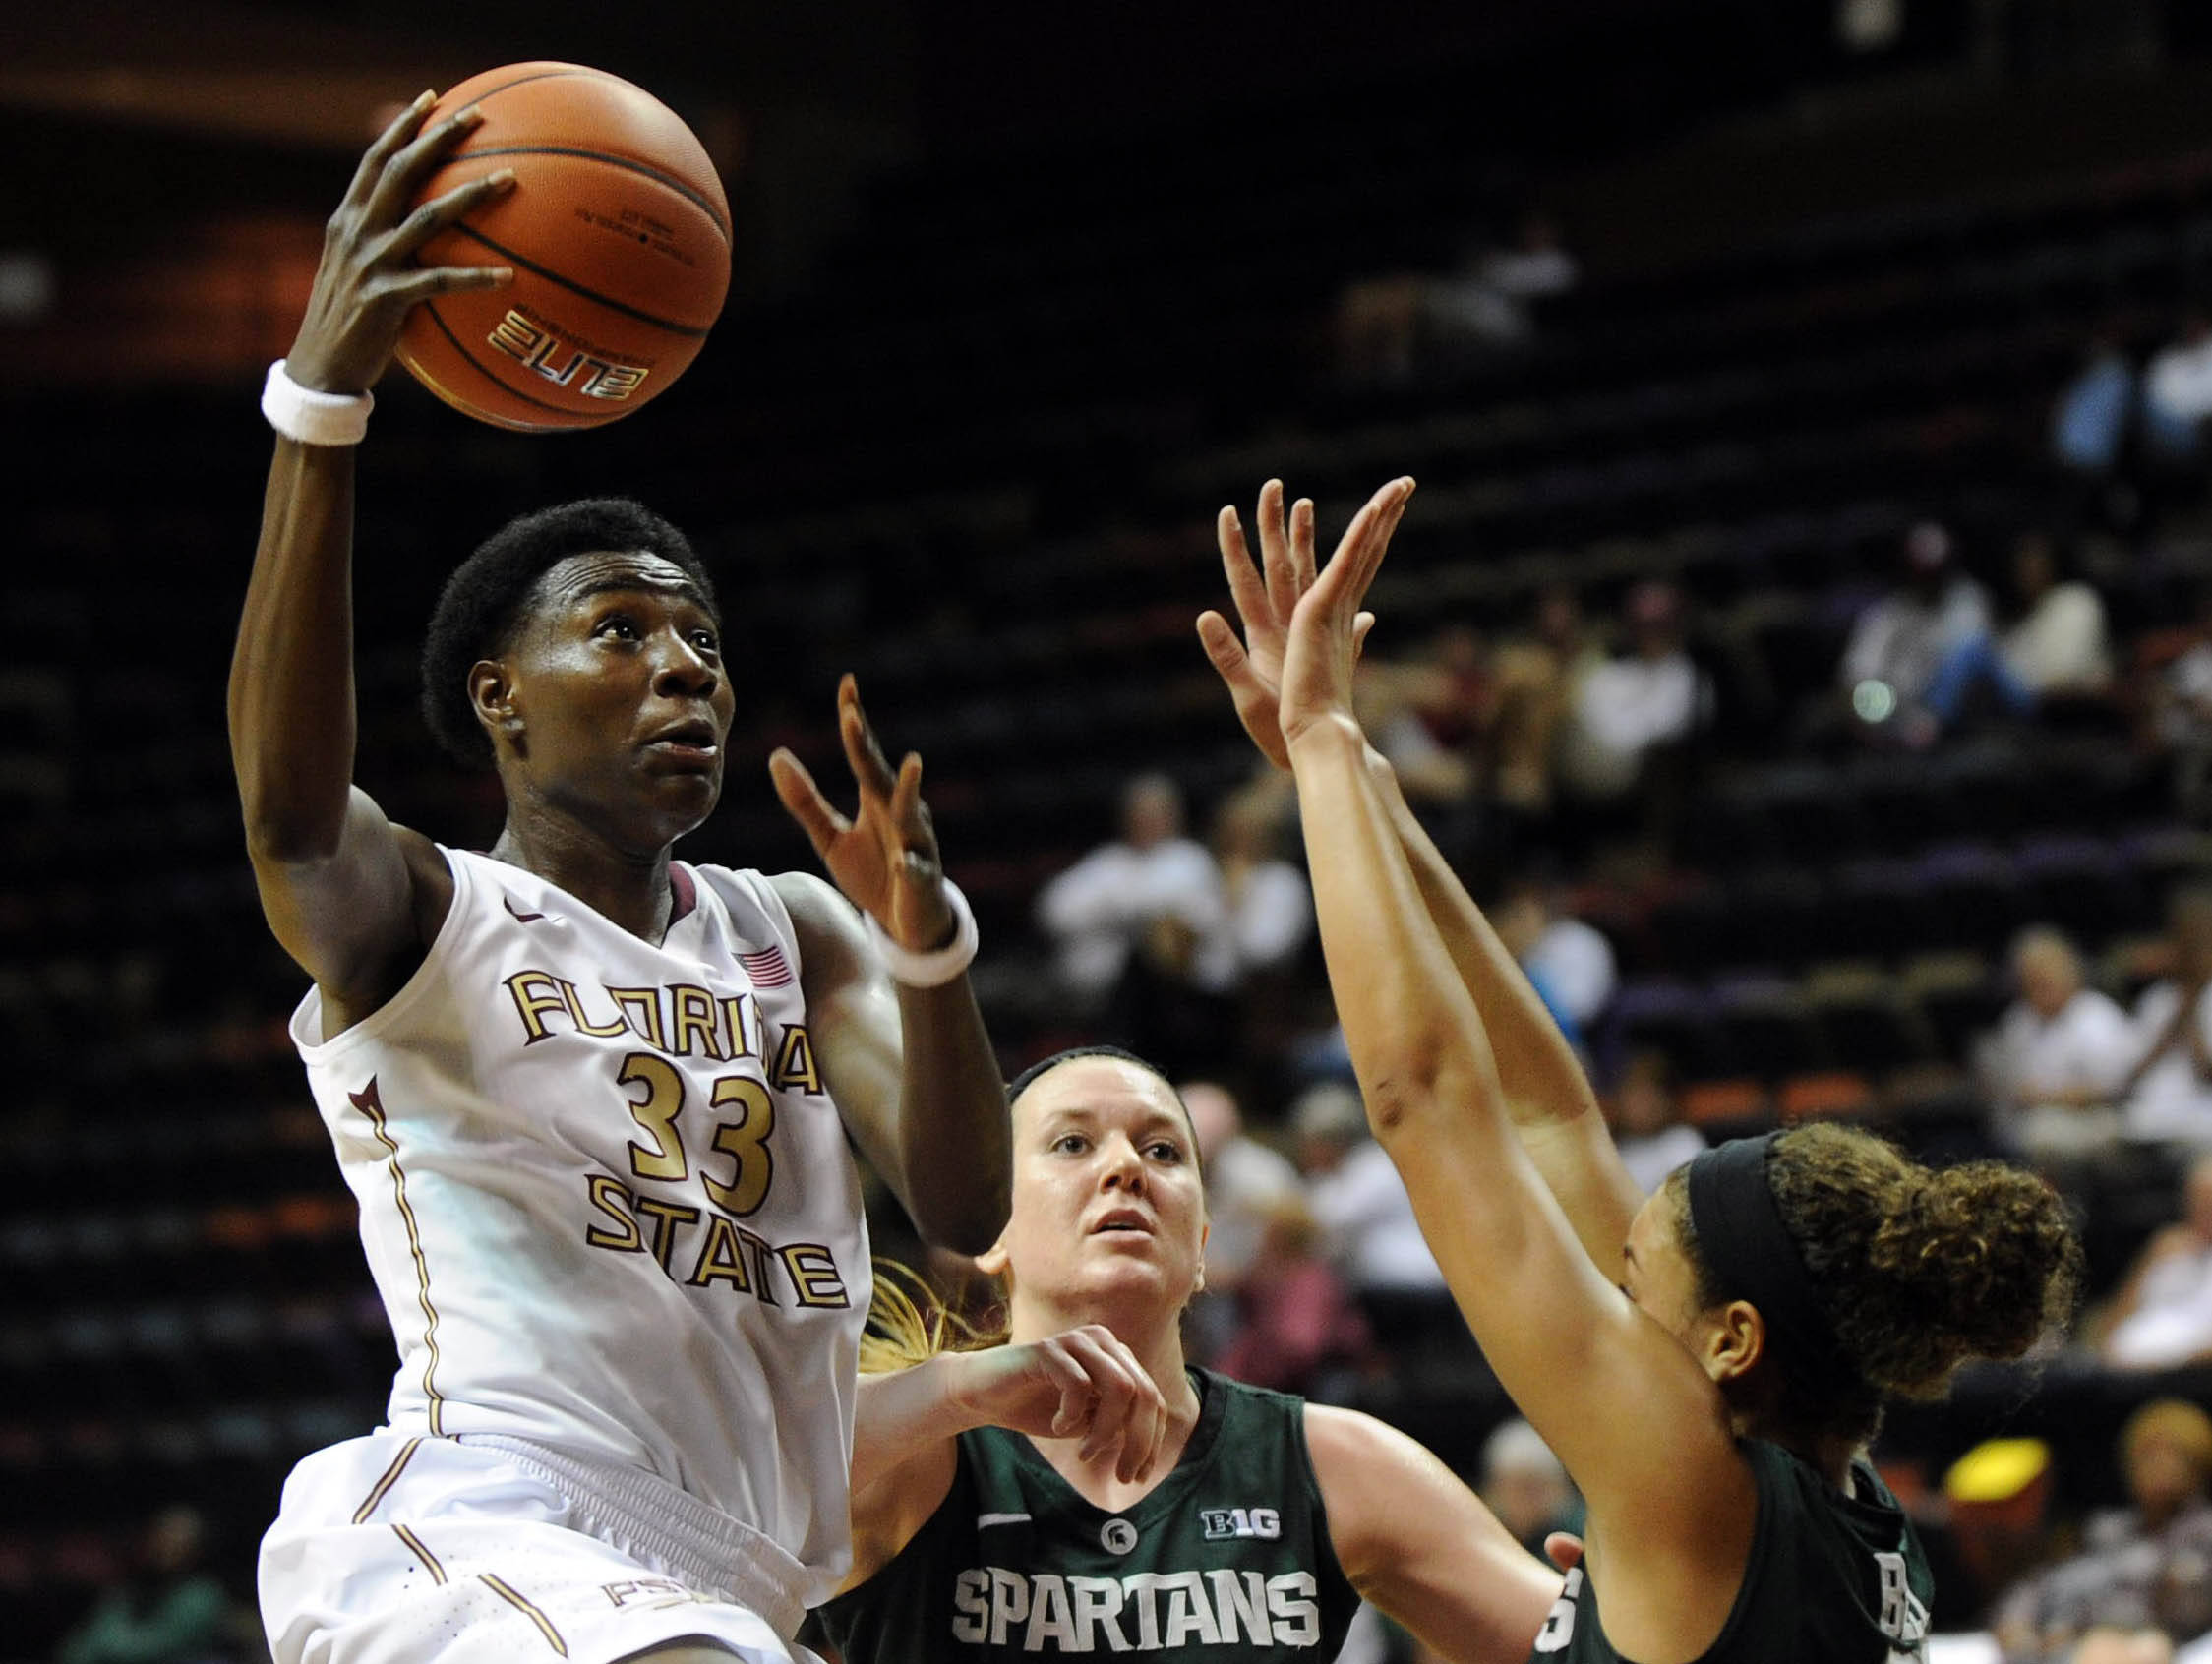 Dec 4, 2013; Tallahassee, FL, USA; Michigan State guard Klarissa Bell (21) tries to defend a shot from Florida State Seminoles forward Natasha Howard (33) during the game at the Donald L. Tucker Center (Tallahassee). Mandatory Credit: Melina Vastola-USA TODAY Sports